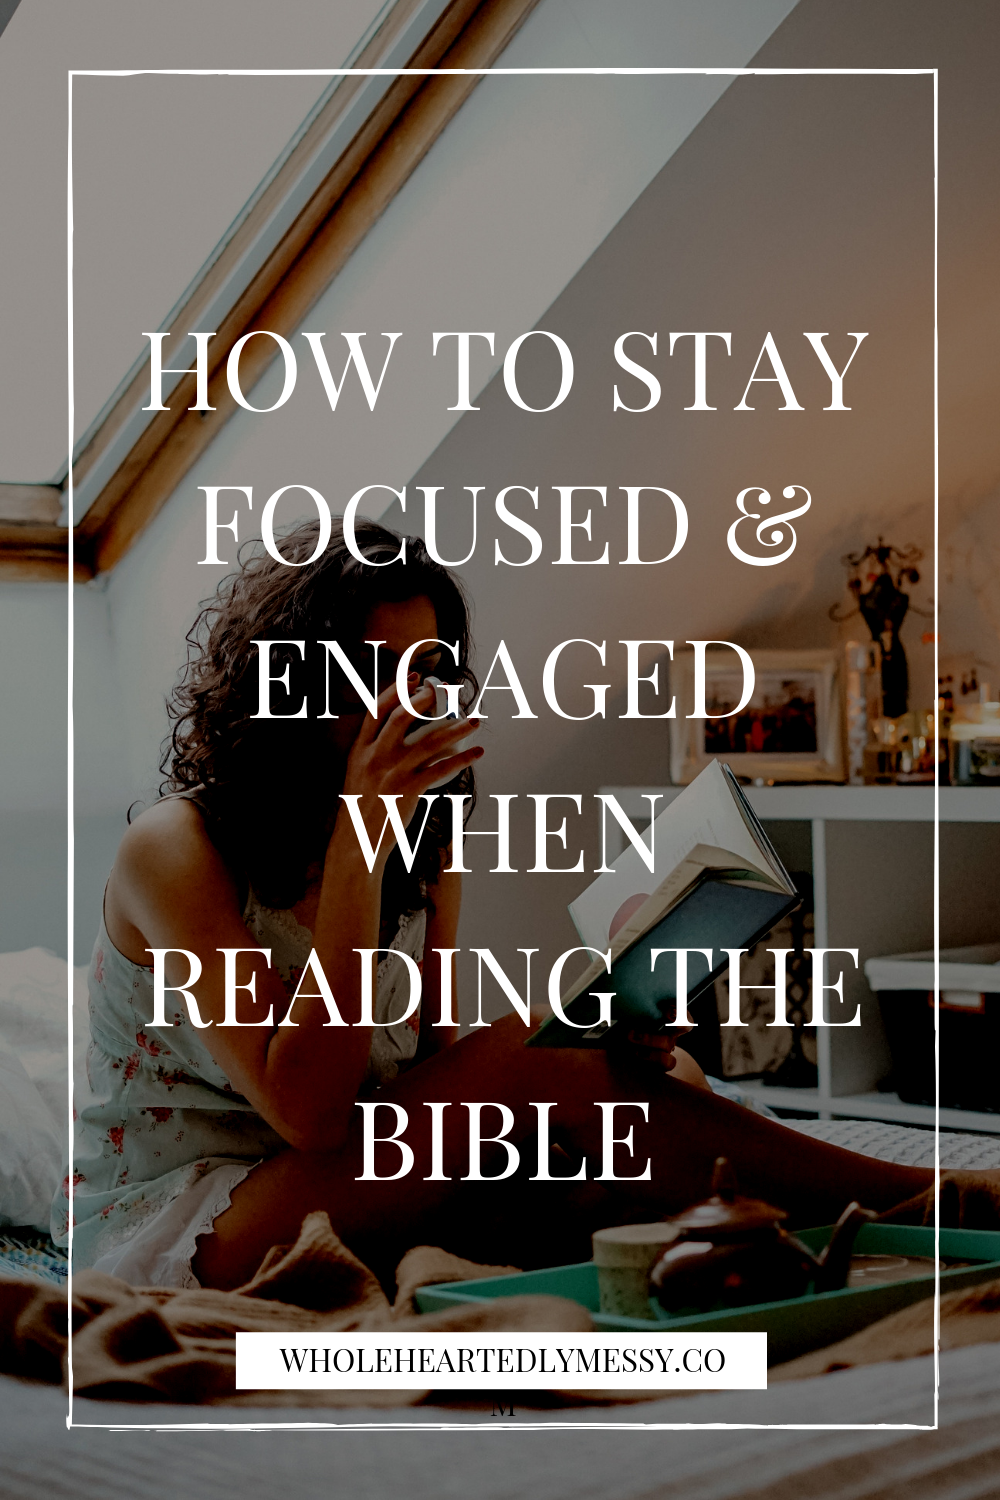 HOW TO STAY FOCUSED & ENGAGED WHEN READING THE BIBLE.png